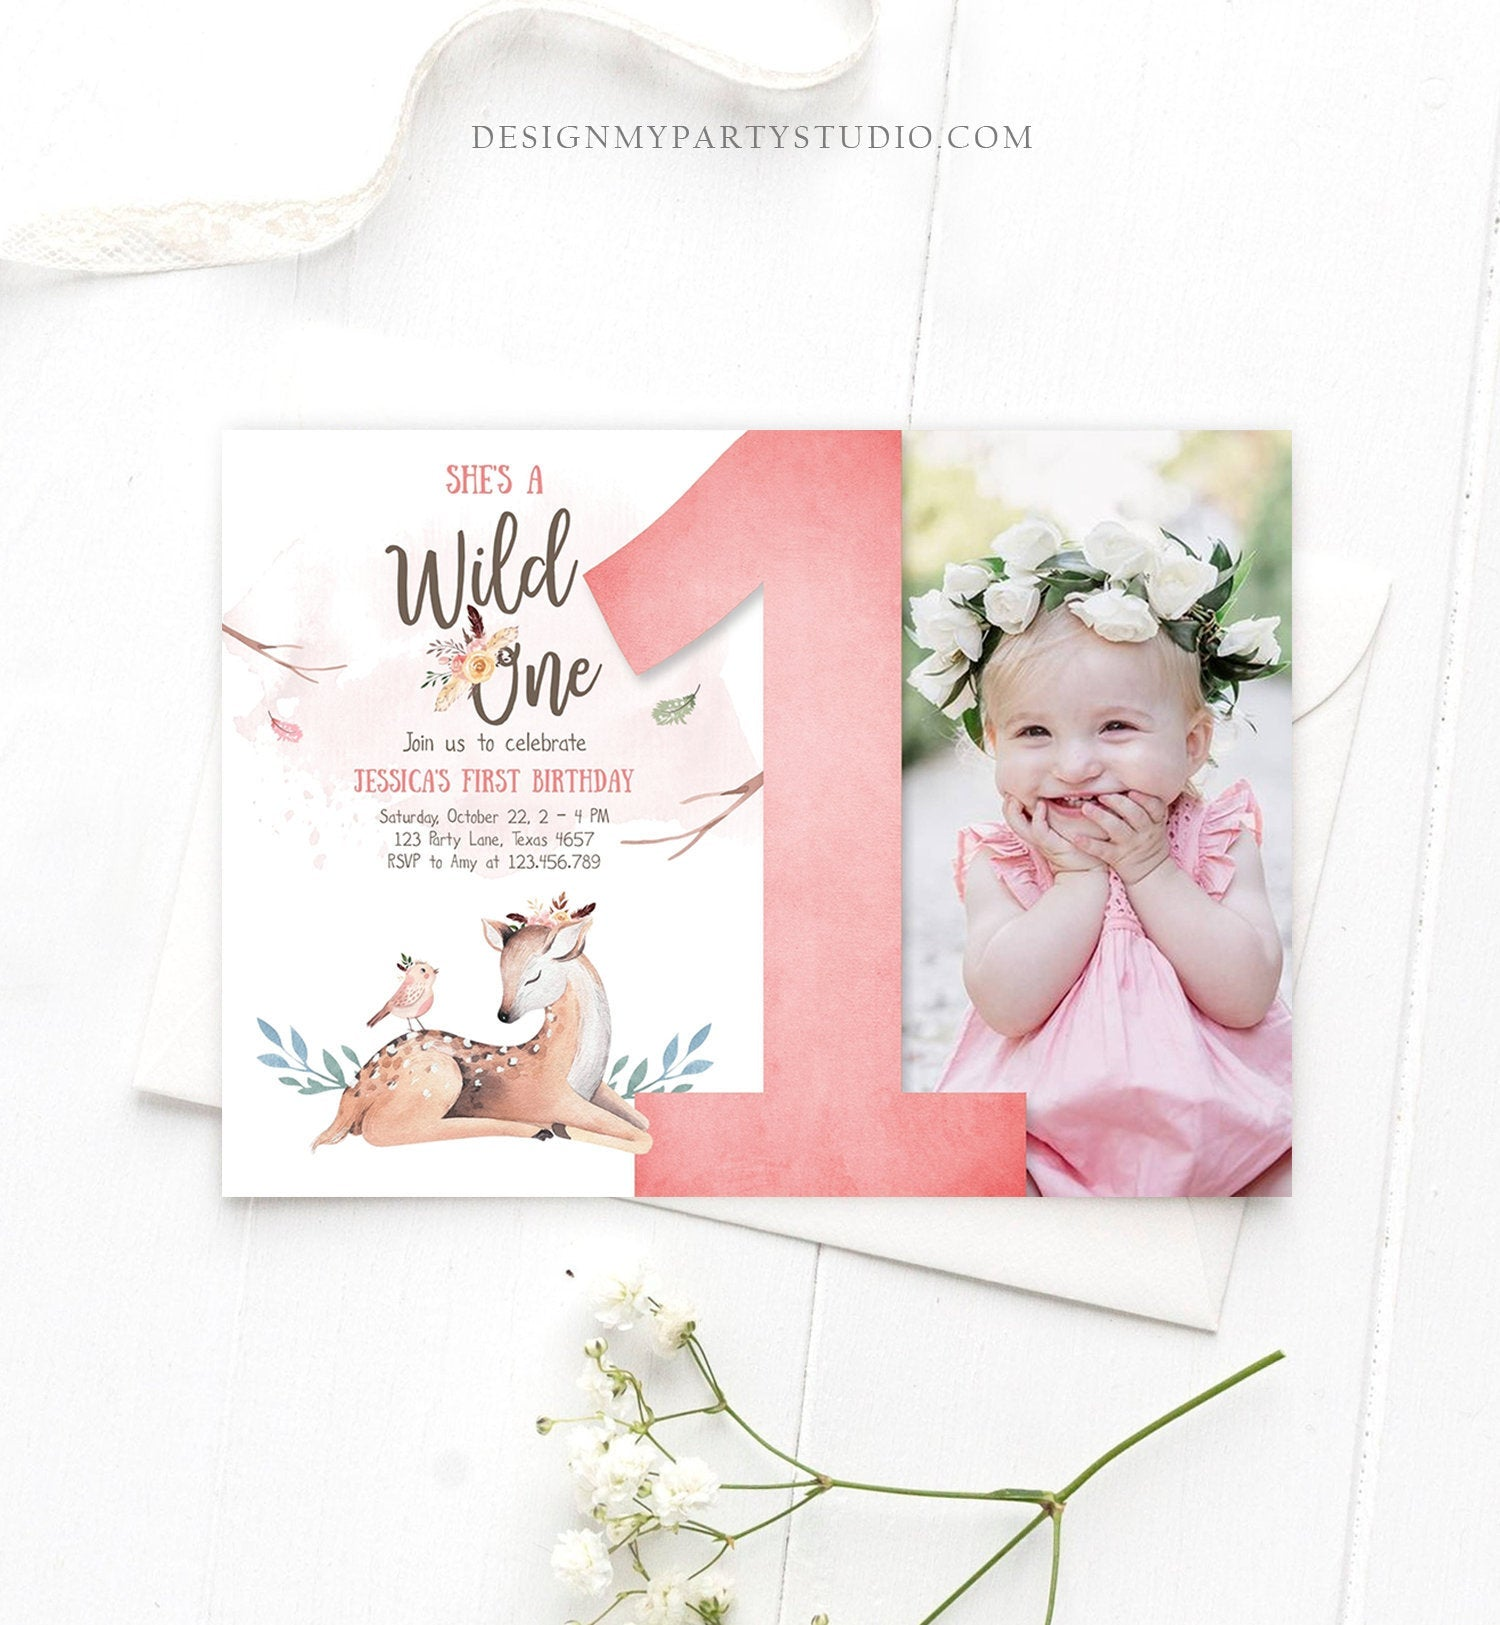 Editable Birthday Invitation Wild One Girl Invite Tribal Boho Arrow Feathers Deer Woodland Pink Download Printable Template Corjl 0192